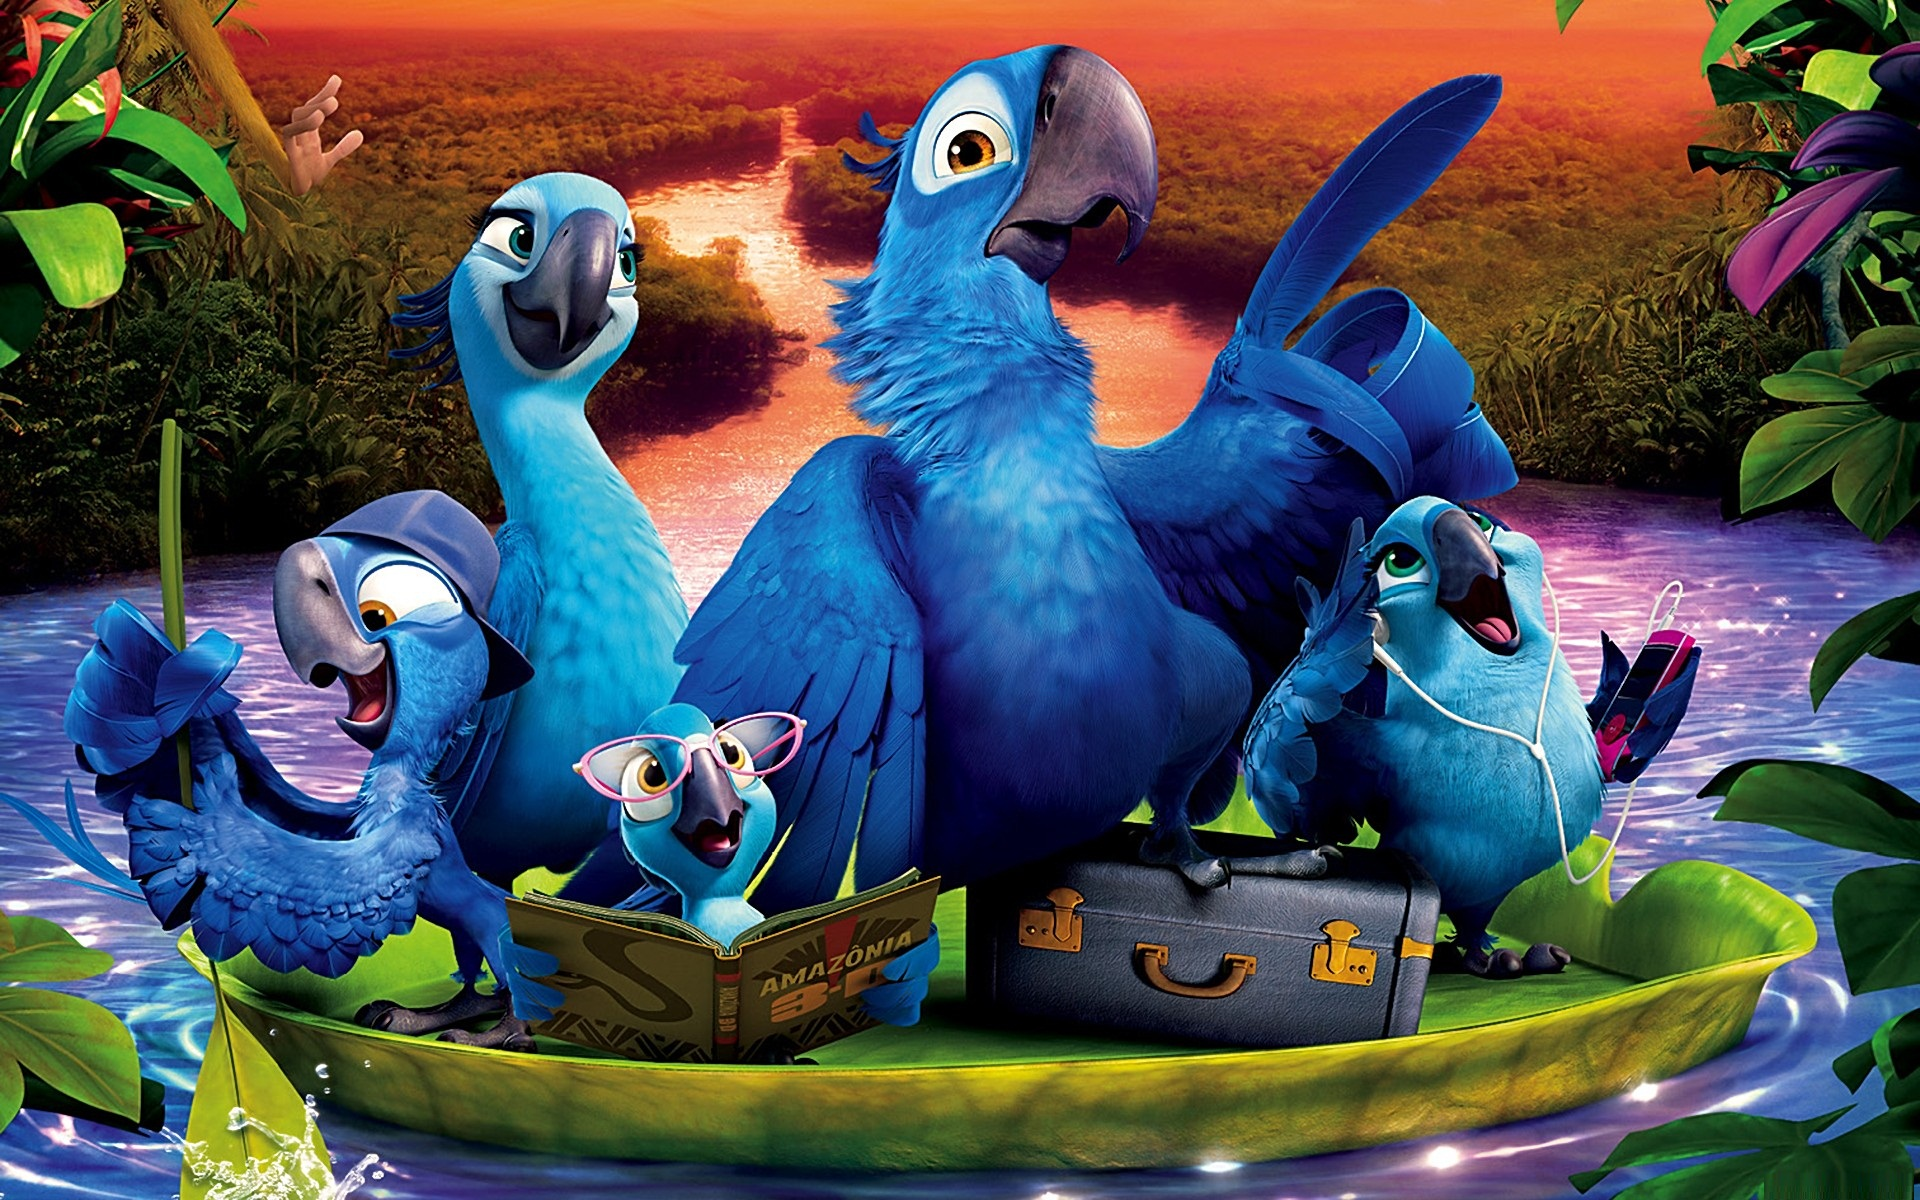 Rio 2 movie still 1920 x 1200 download close